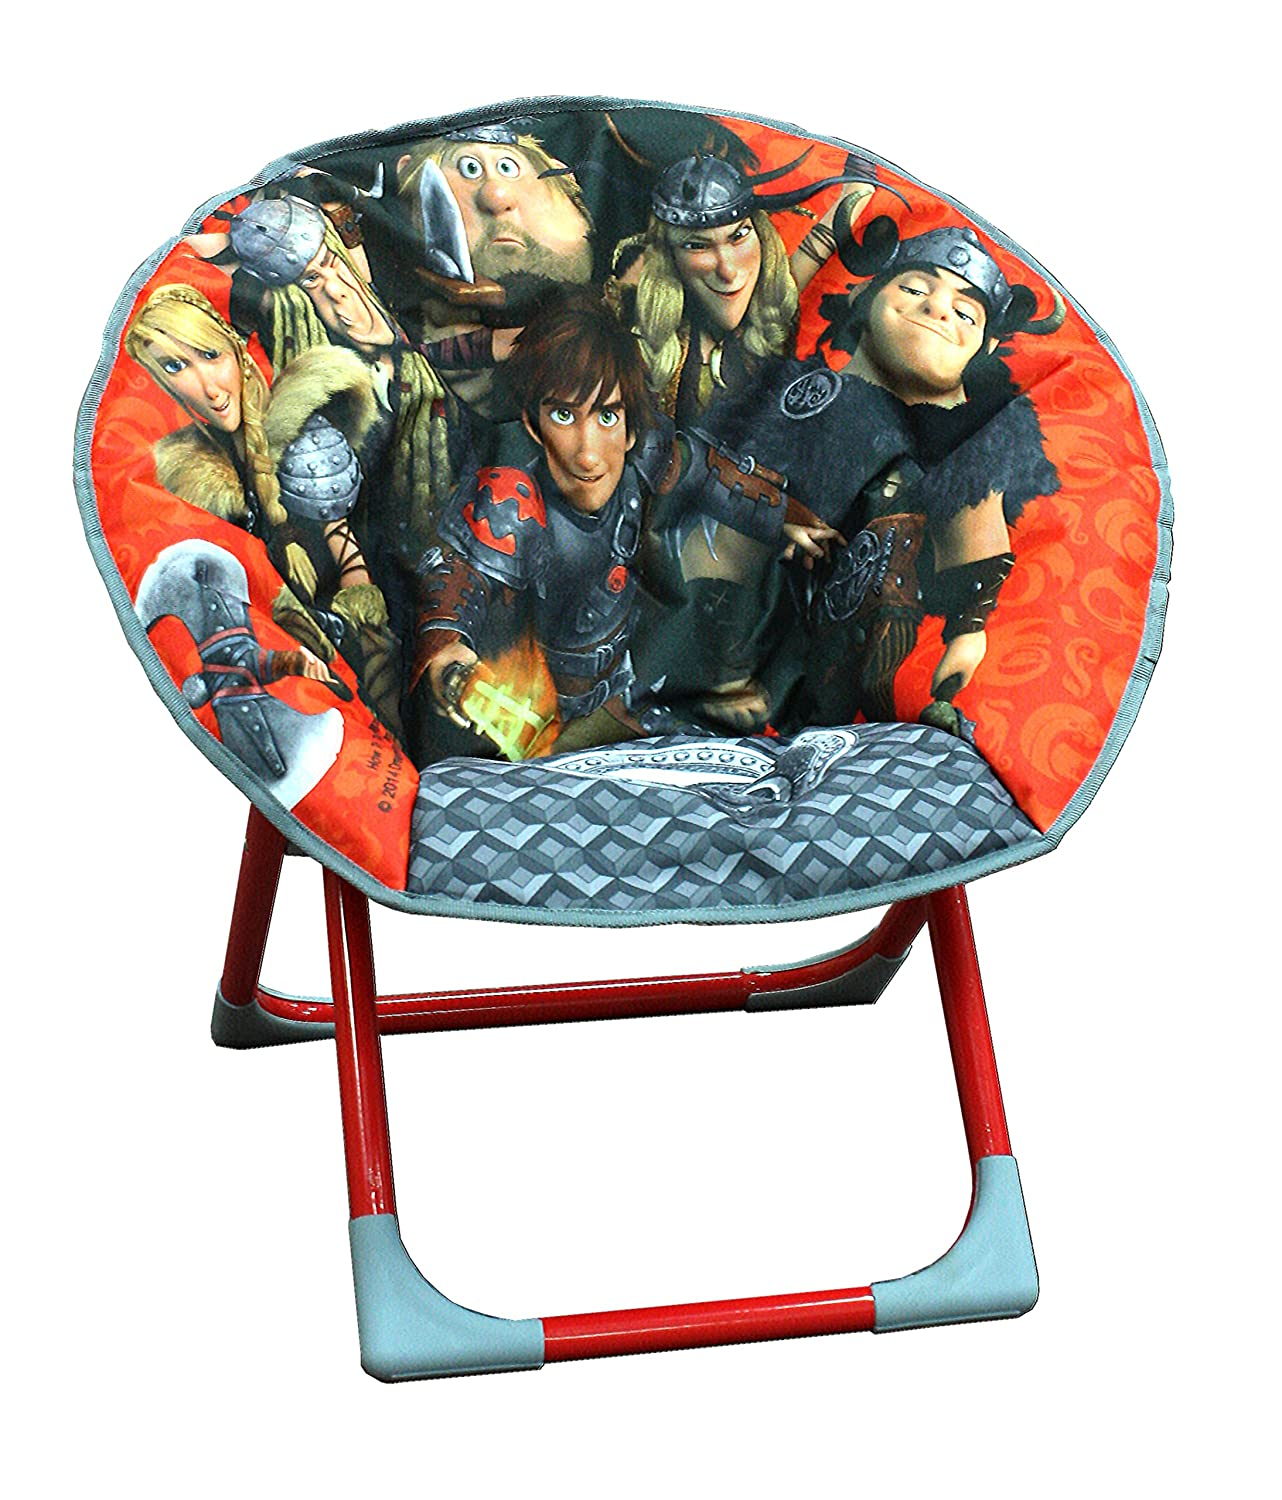 How to Train Your Dragon Moon Chair HGL SV11039